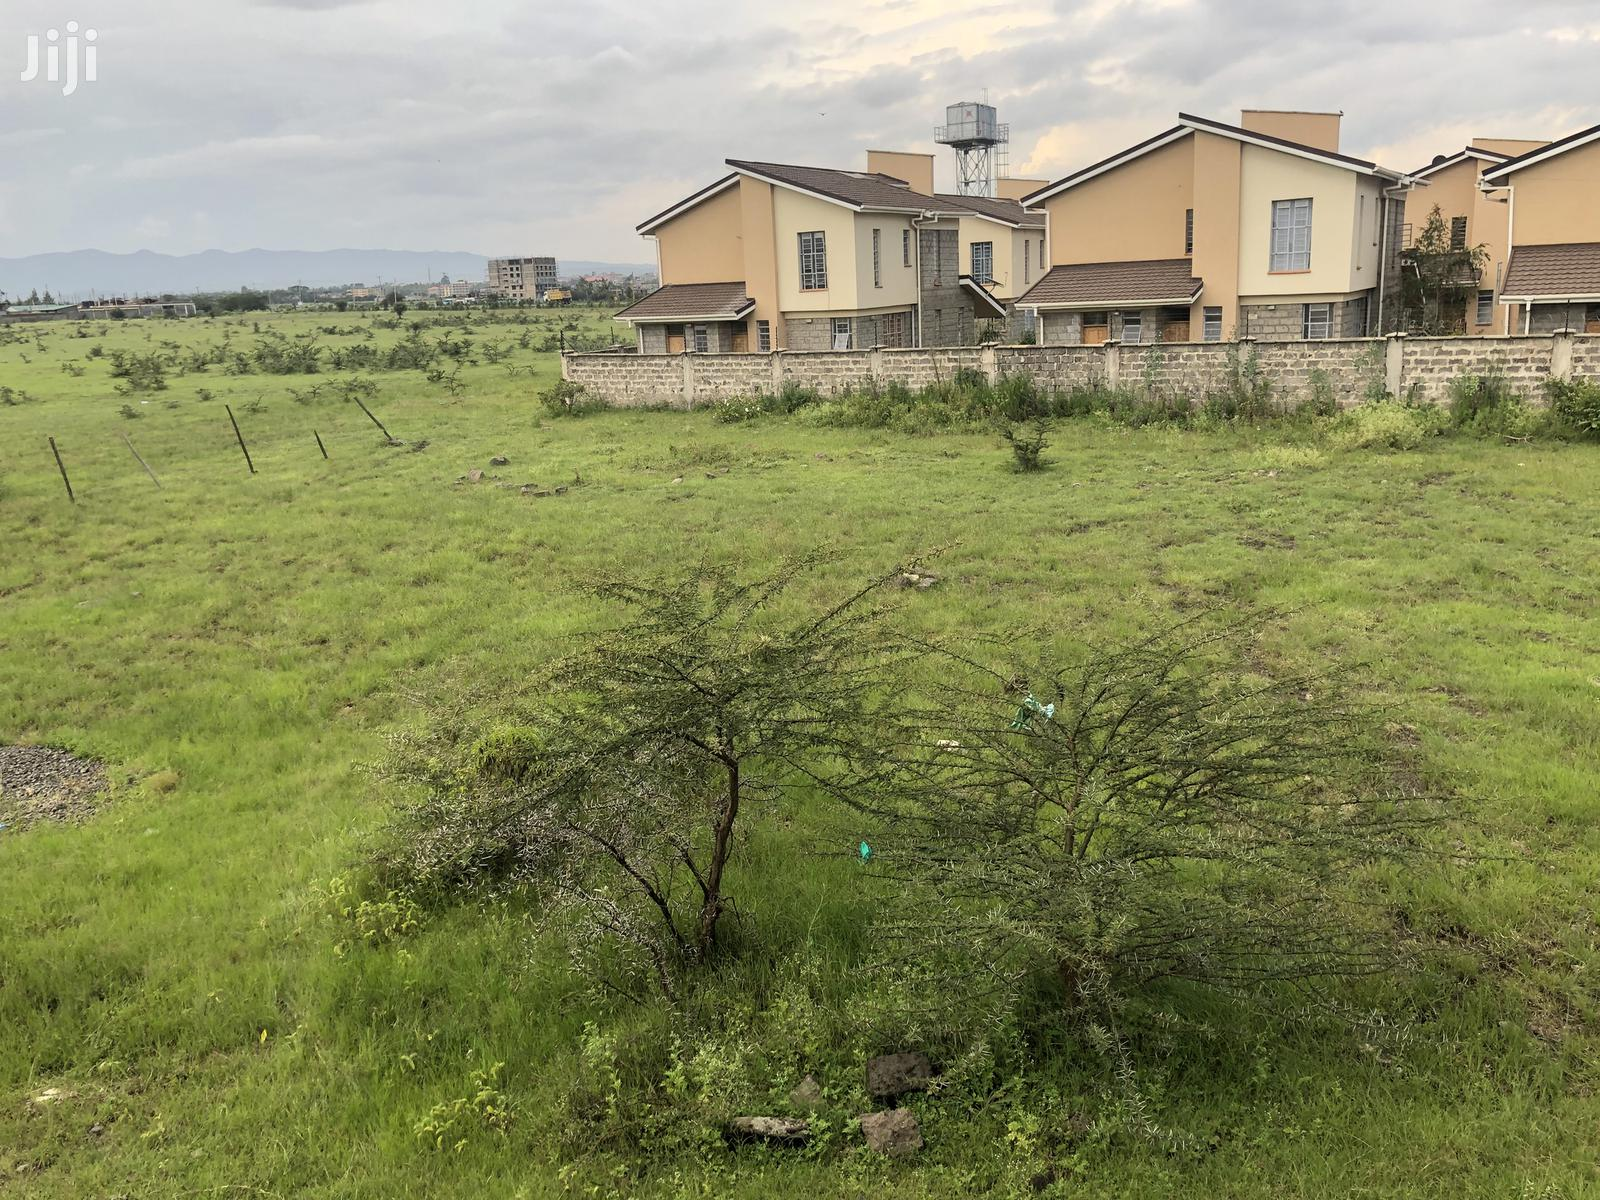 1/2 Acre Land For Sale, Nazarene | Land & Plots For Sale for sale in Ongata Rongai, Kajiado, Kenya